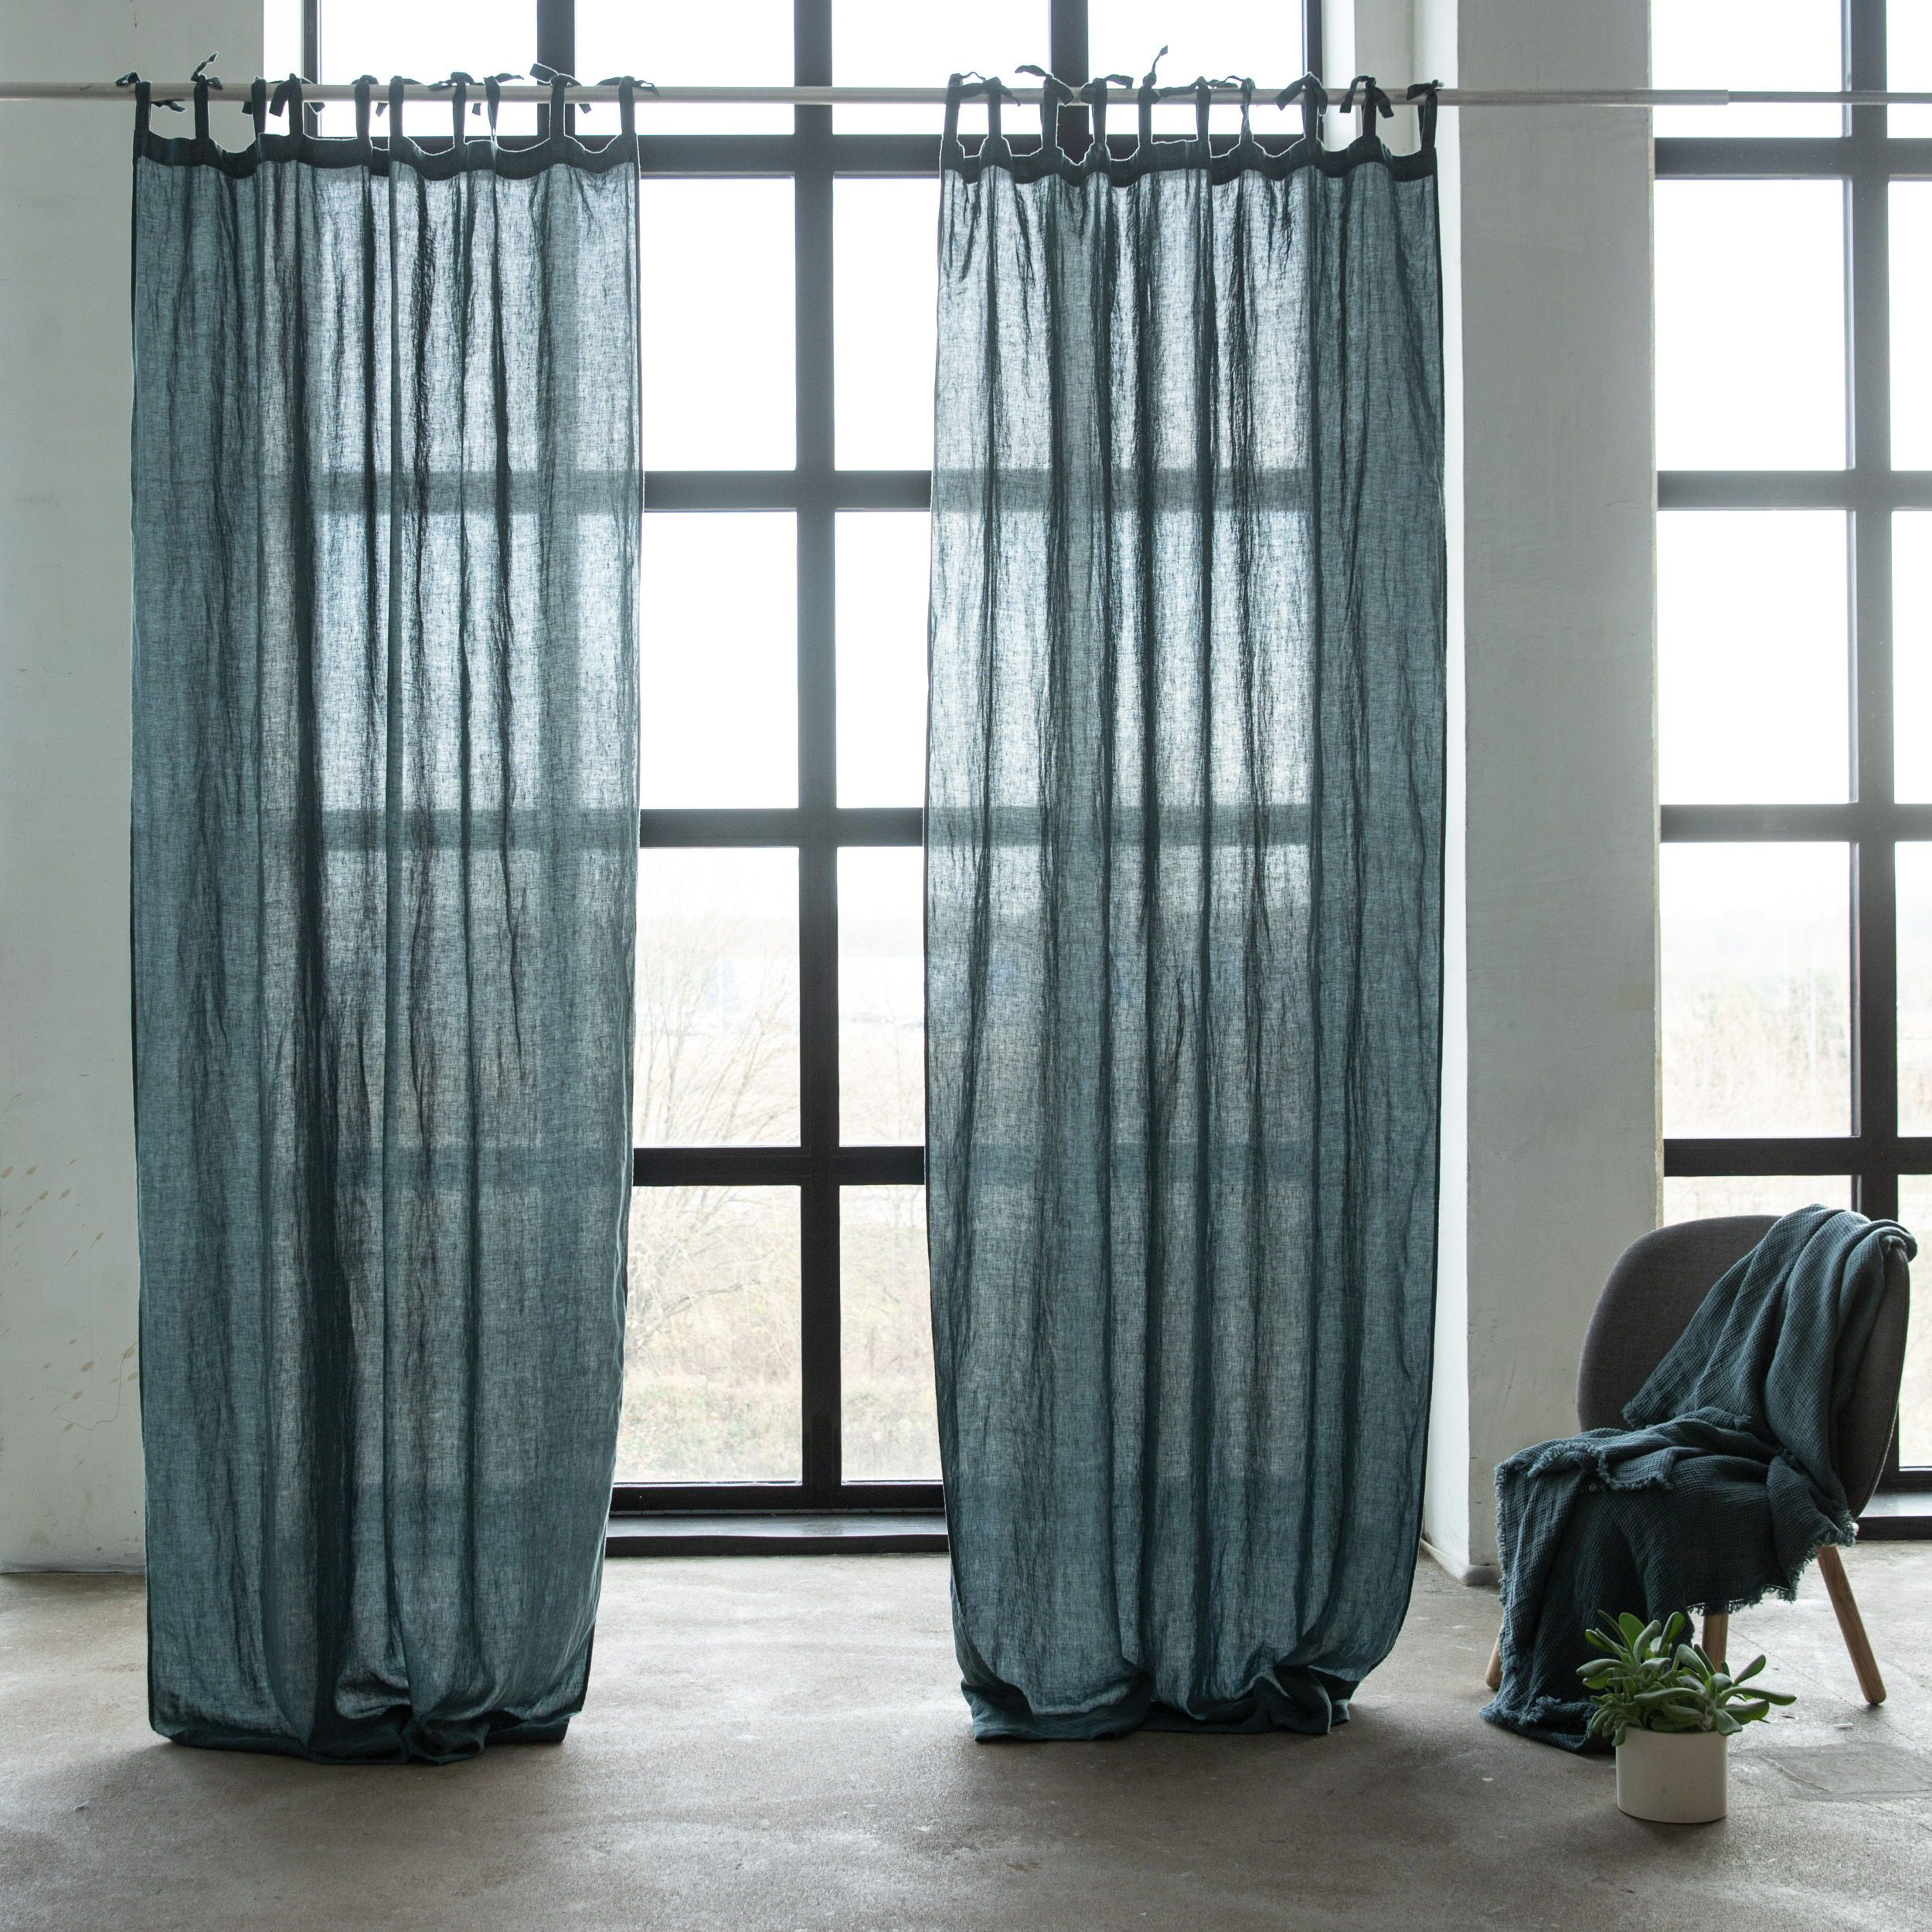 Finest Linen Curtains With Ties Balsam Green Stone Washed Linen Silver In 2020 Linen Curtains Linen Curtain Panels Linen Curtains Bedroom #silver #curtains #for #living #room